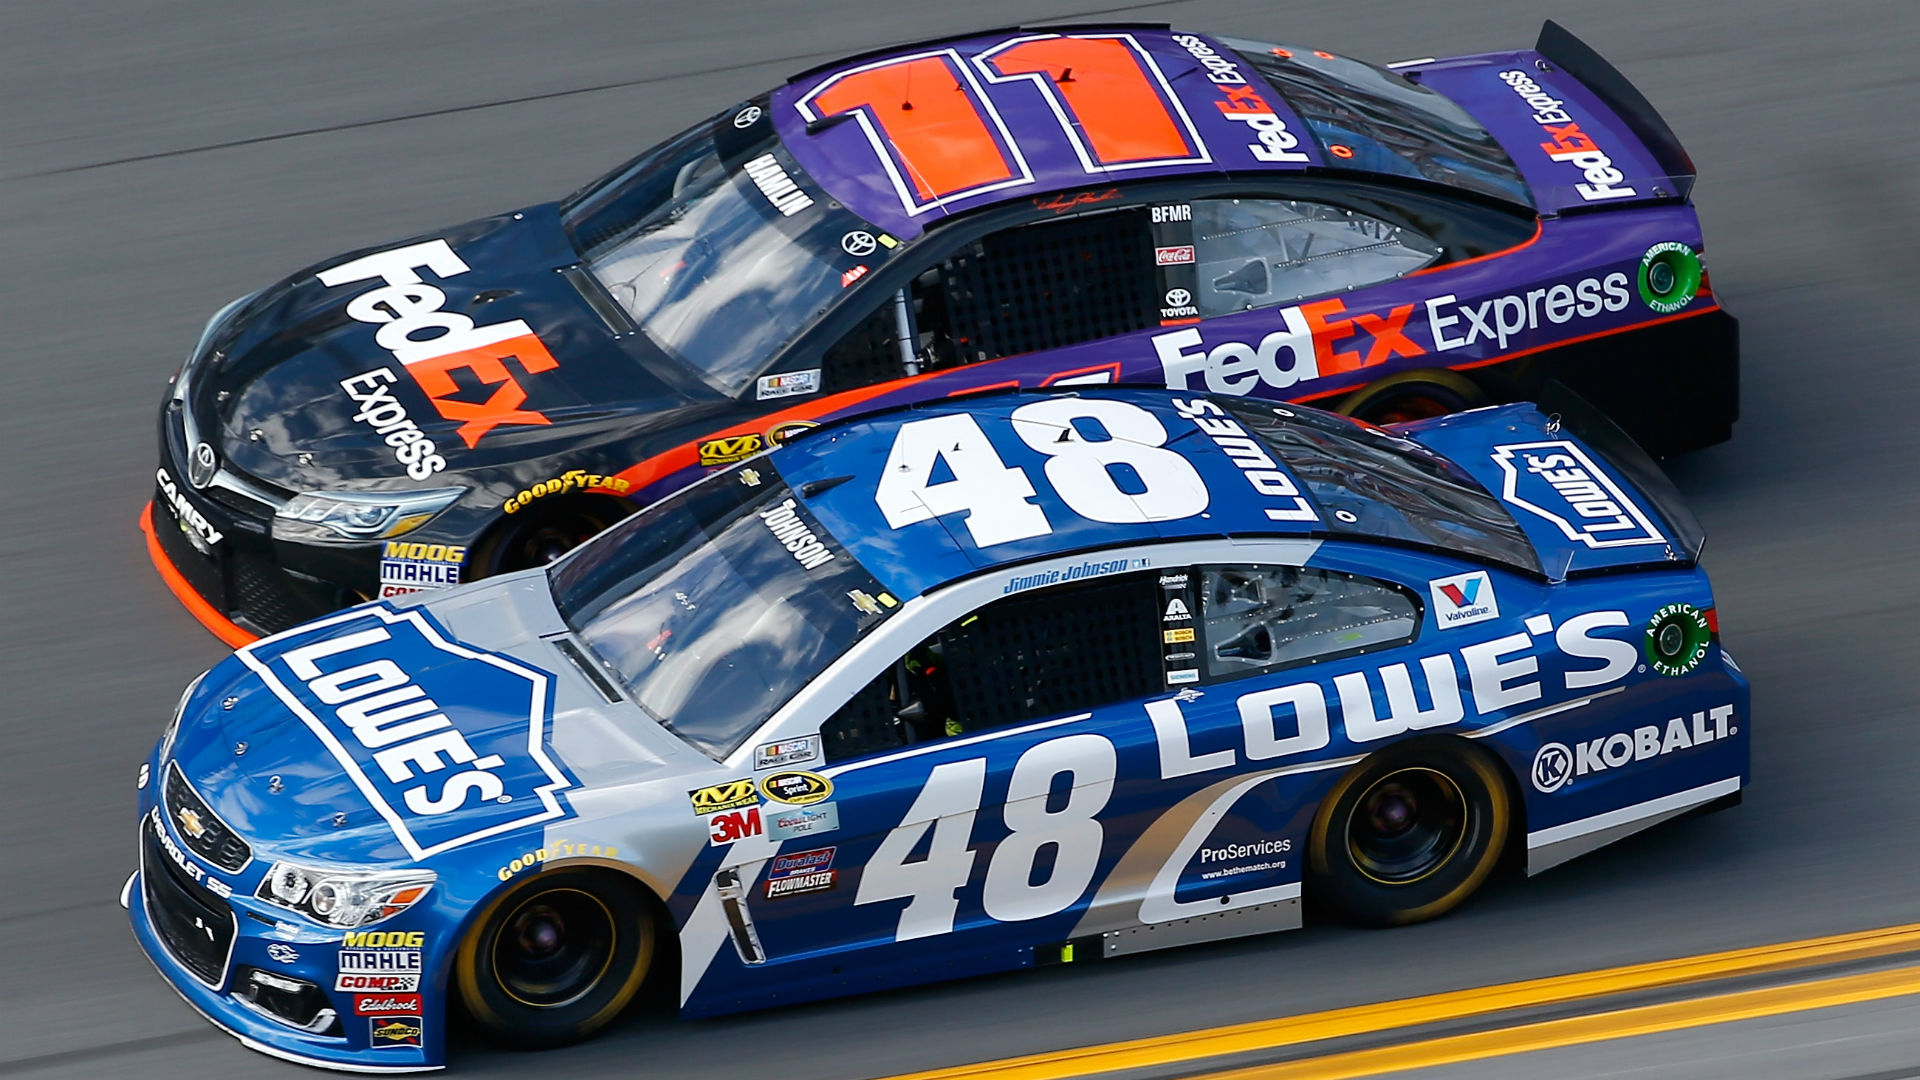 Jimmie Johnson, Hendrick Motorsports will no longer be sponsored by Lowe's in 2019